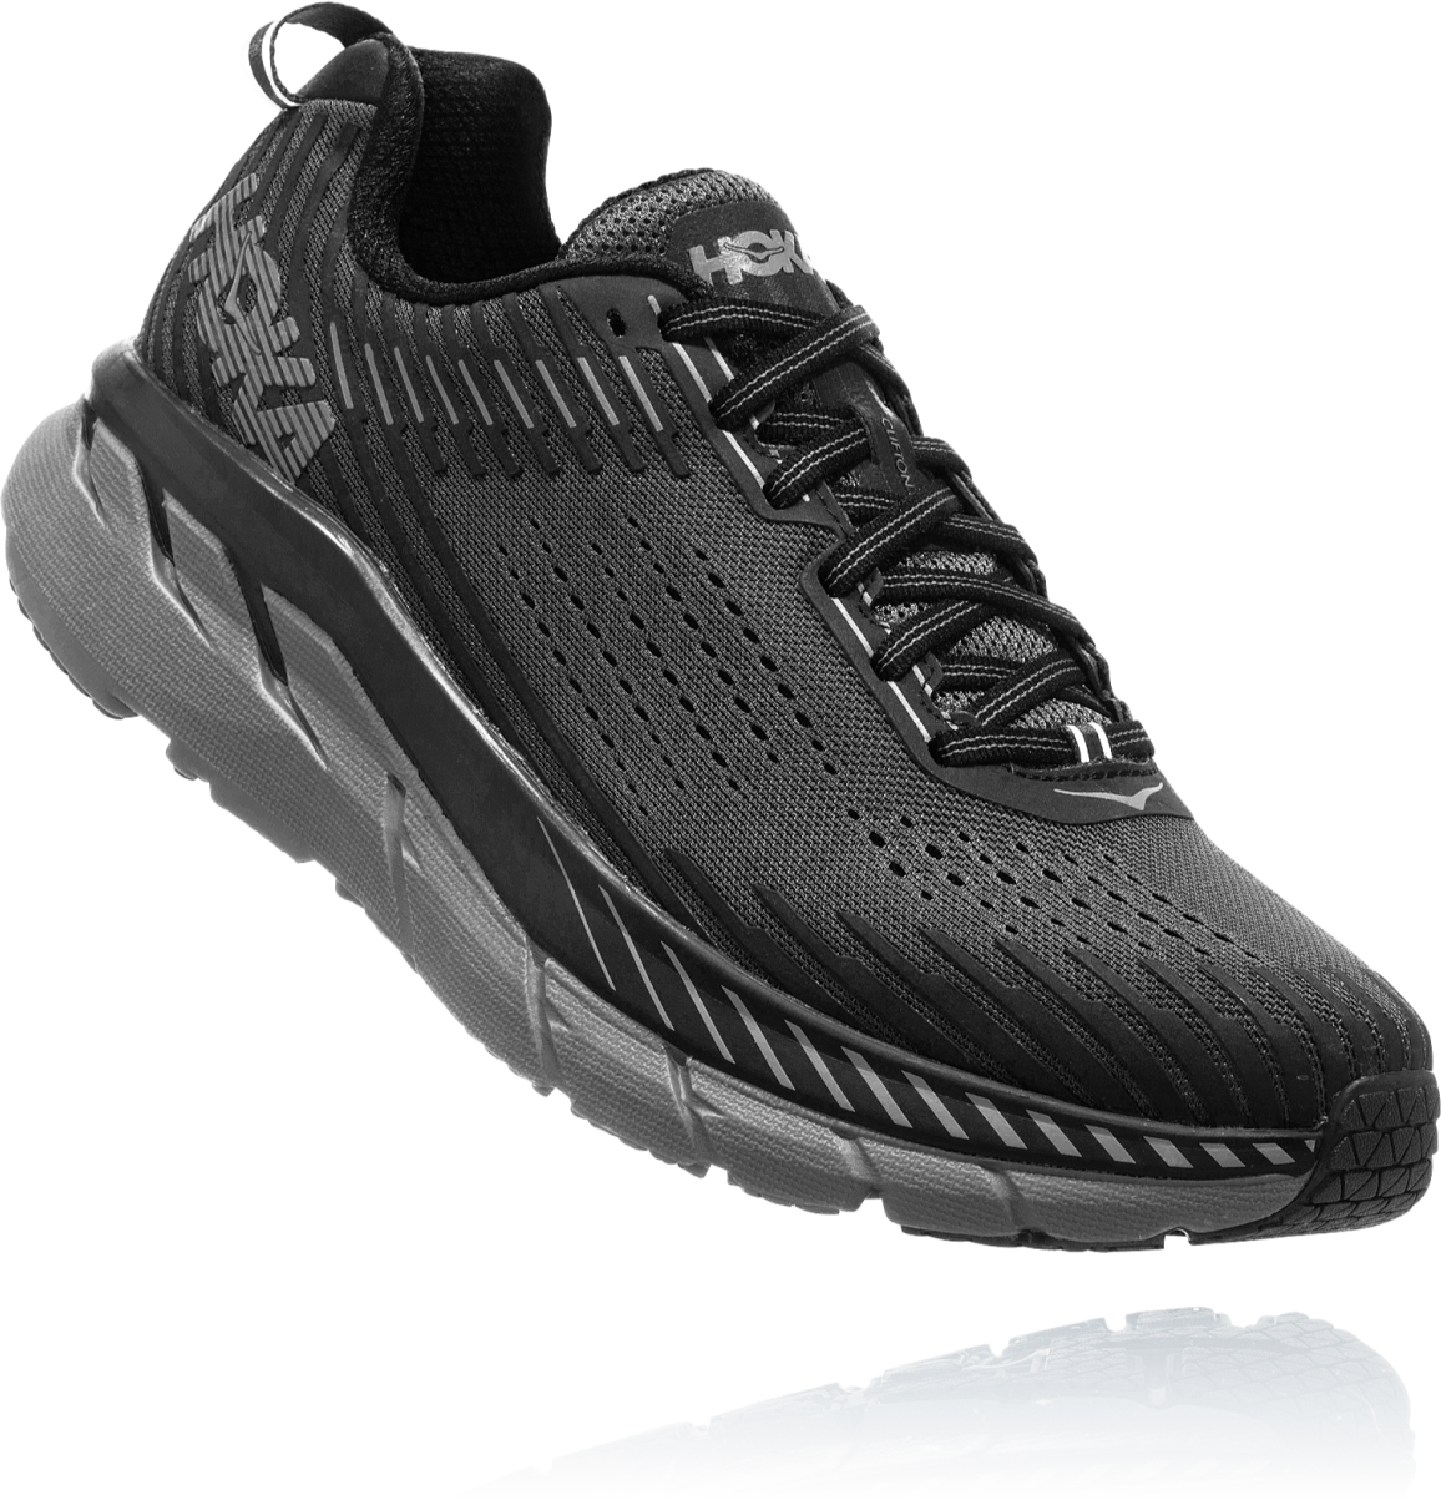 HOKA ONE ONE Clifton 5 Road-Running Shoes - Men's